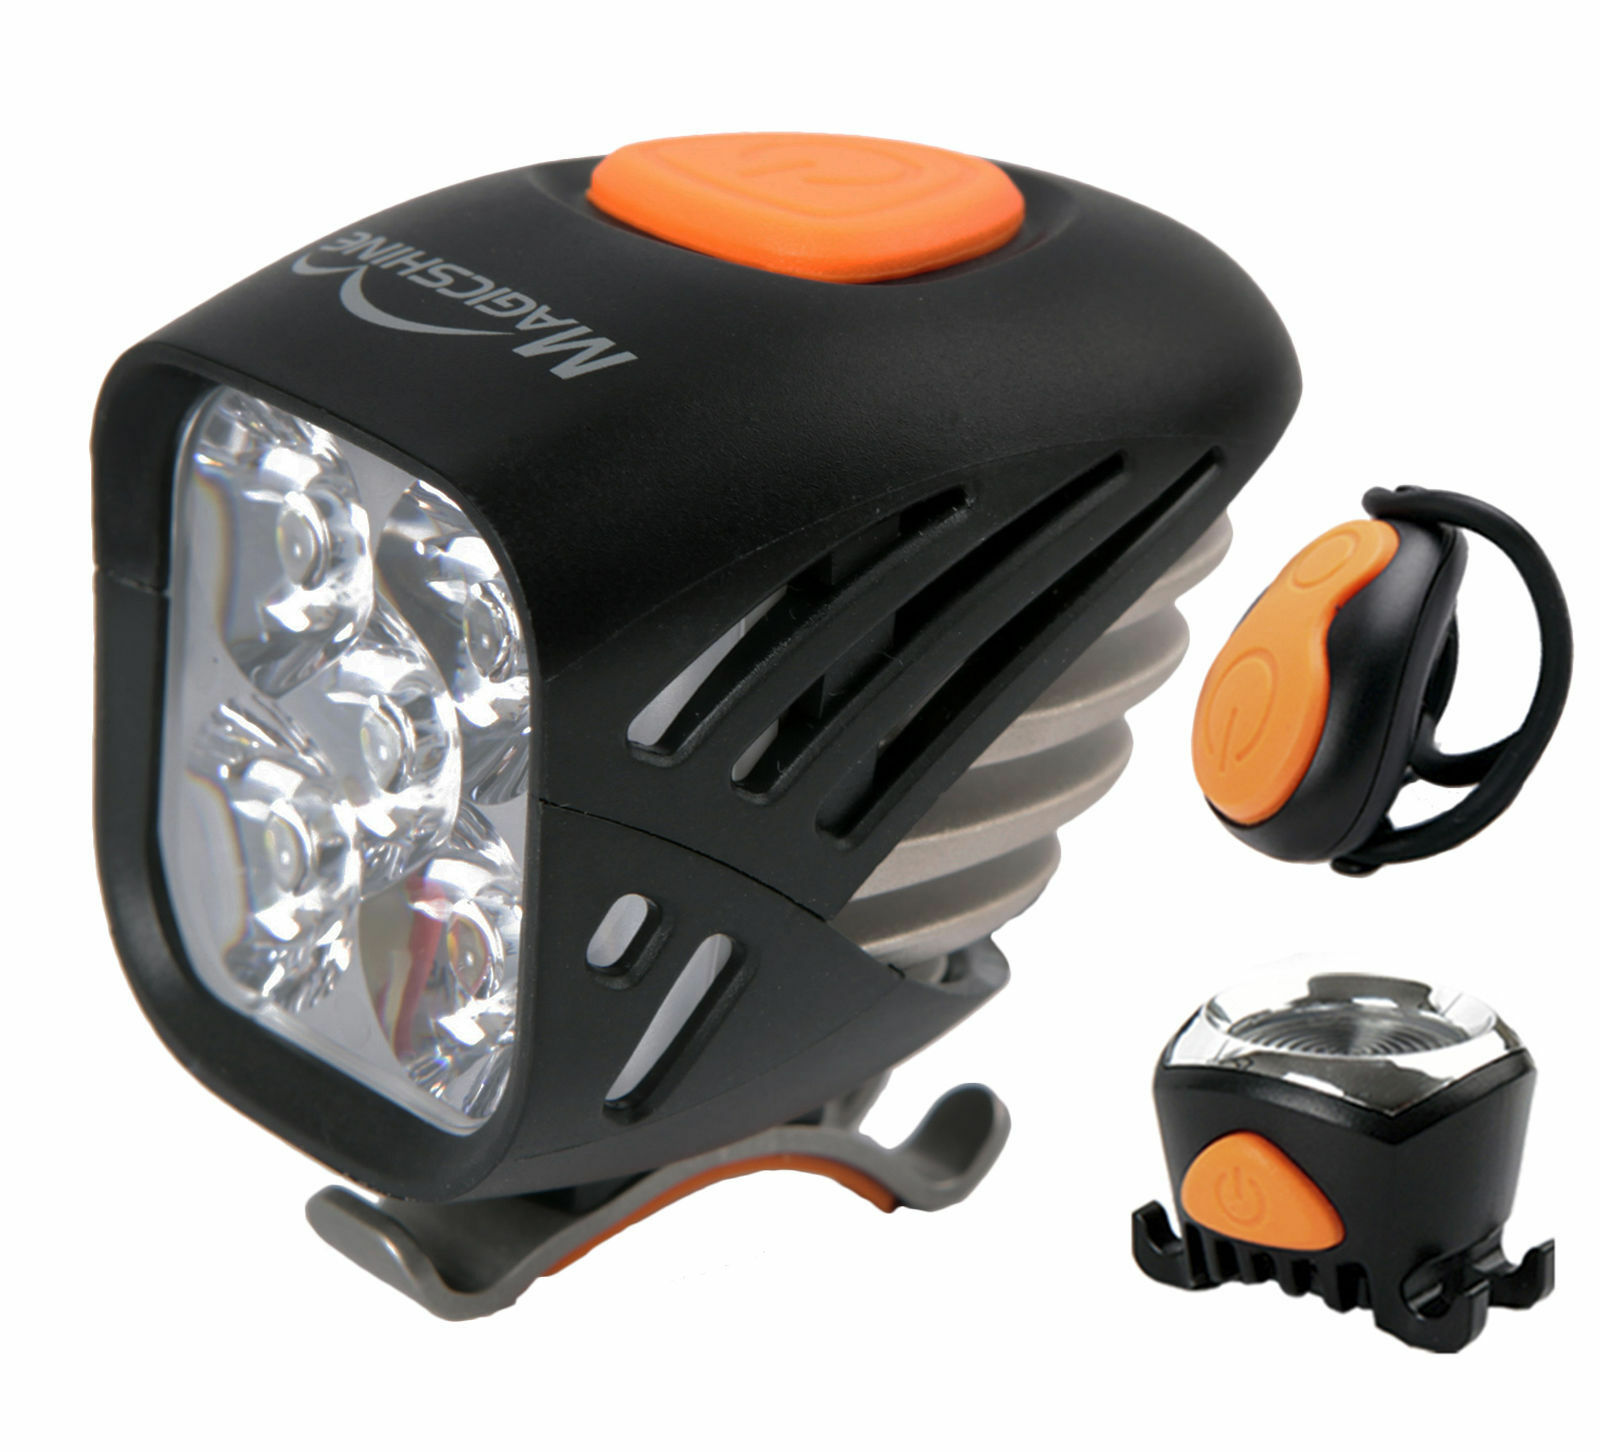 Magicshine MJ906 5000 Lumen MTB Front &Tail Bike Light Combo  Flood Beam